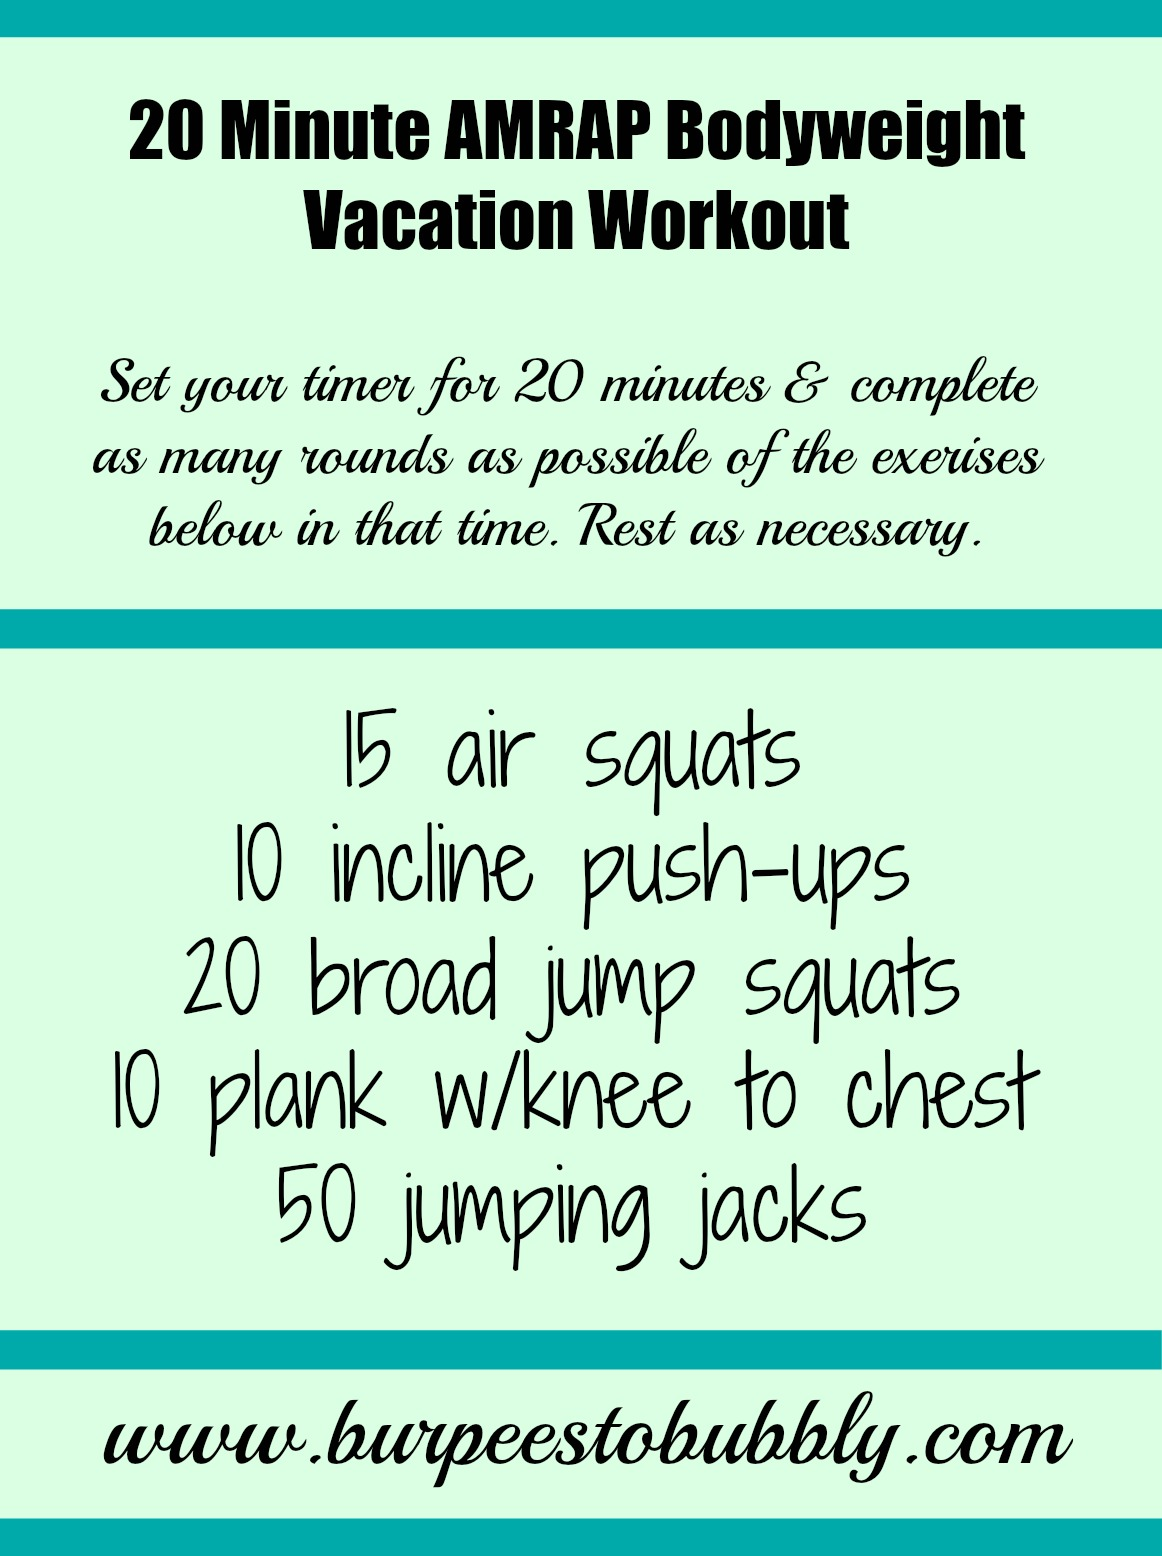 20 Minute At Home Cardio Workout Amrap Workouts No Equipment Eoua Blog